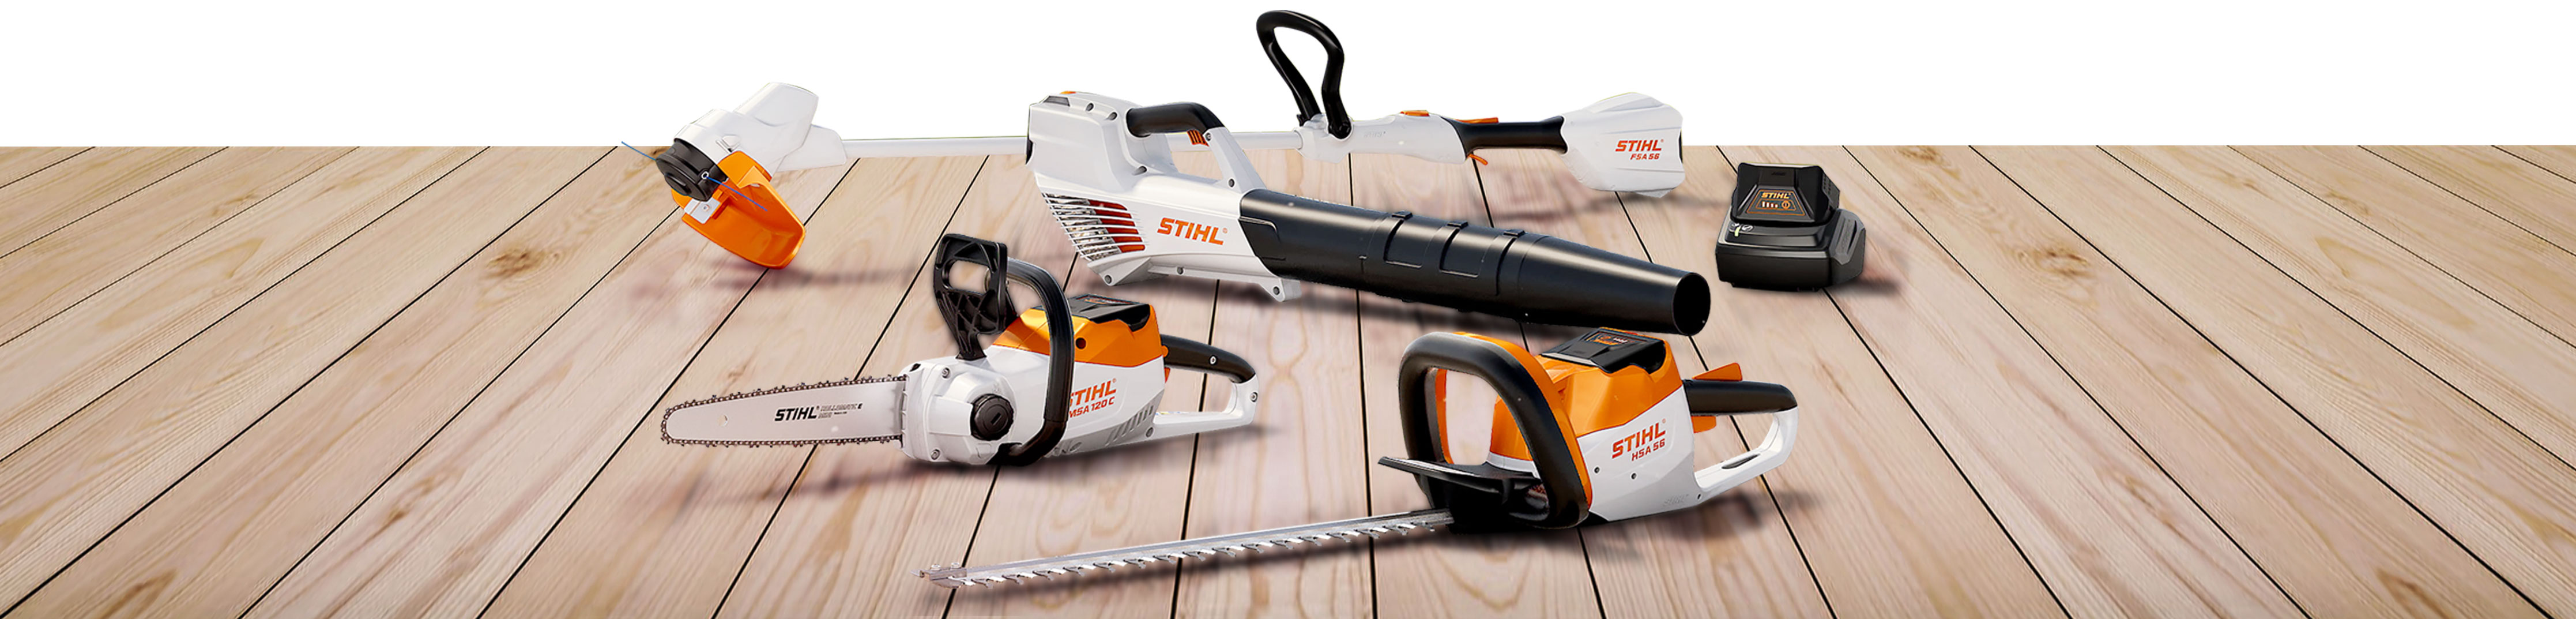 Win these tools!